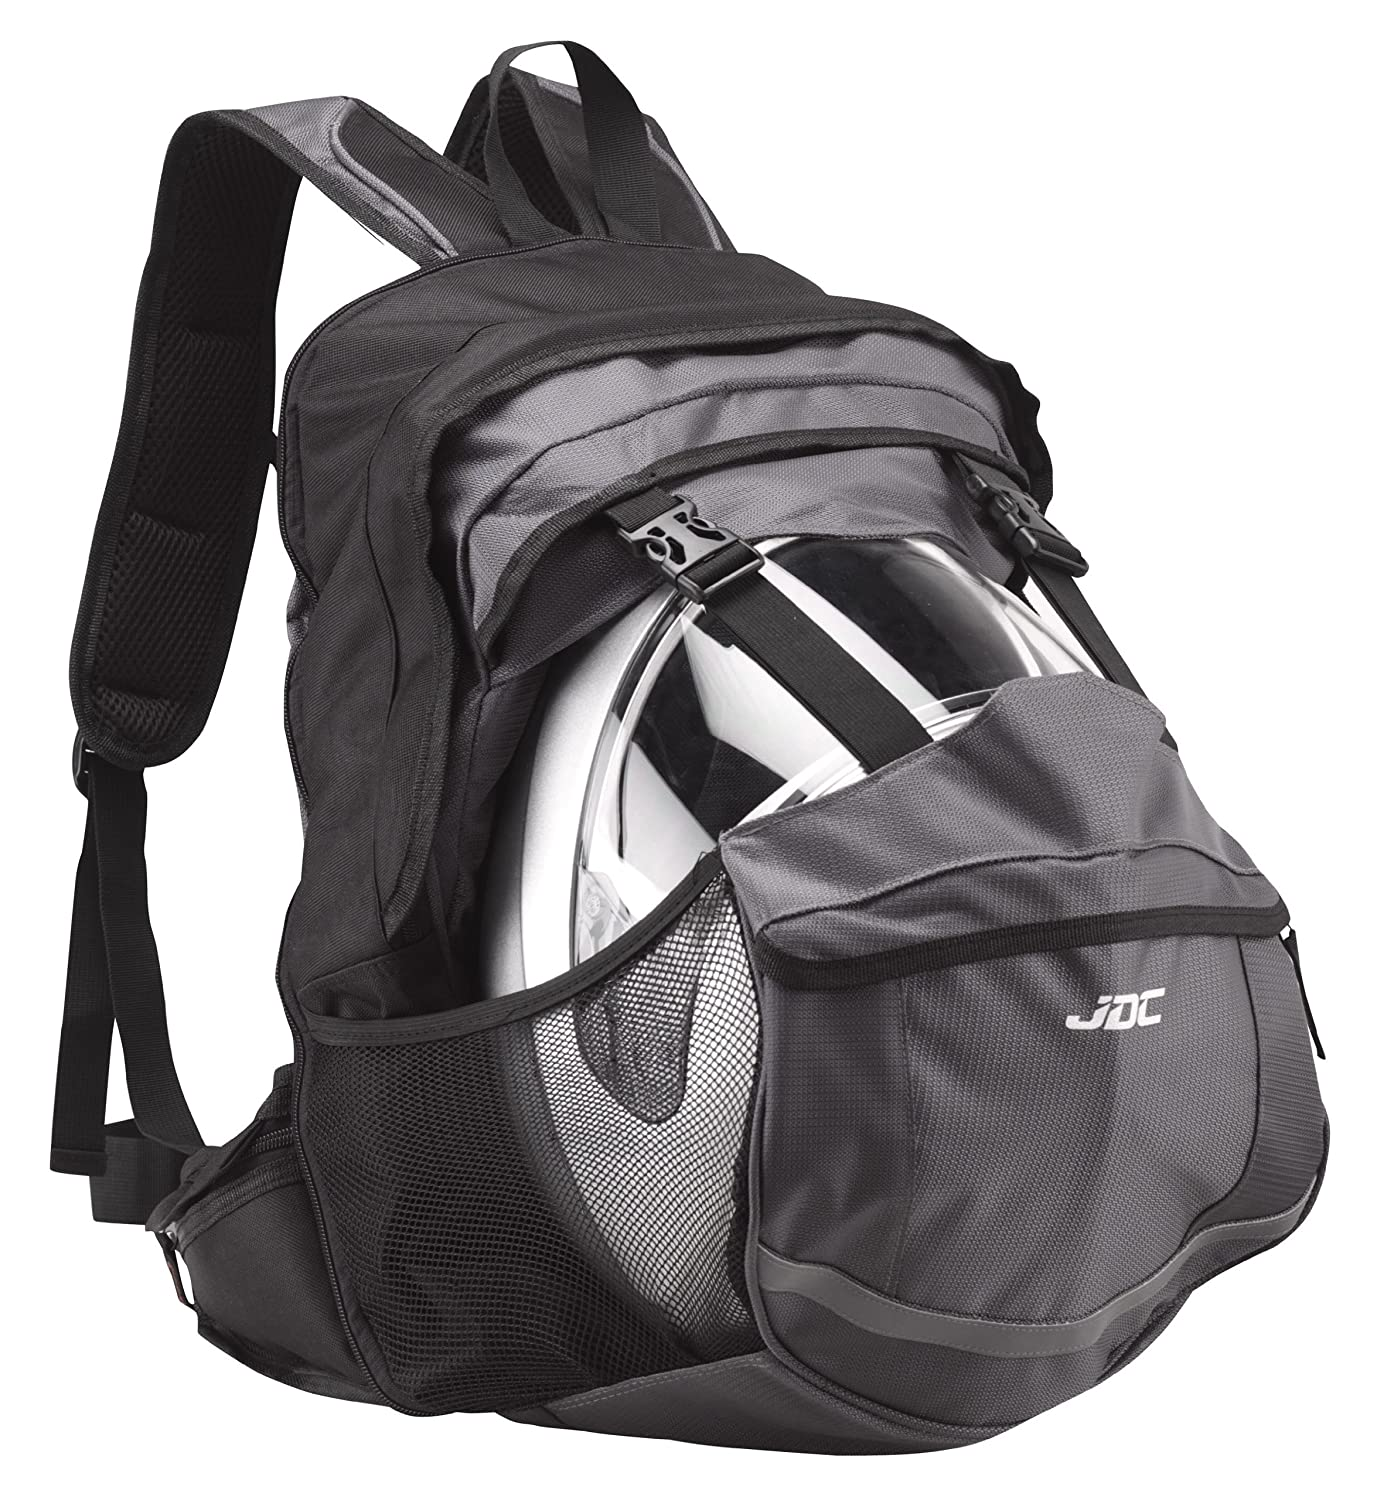 JDC MOTORCYCLE Waterproof RUCKSACK With Helmet Holder/Carrier - 24L expandable to 36L - FRONTIER